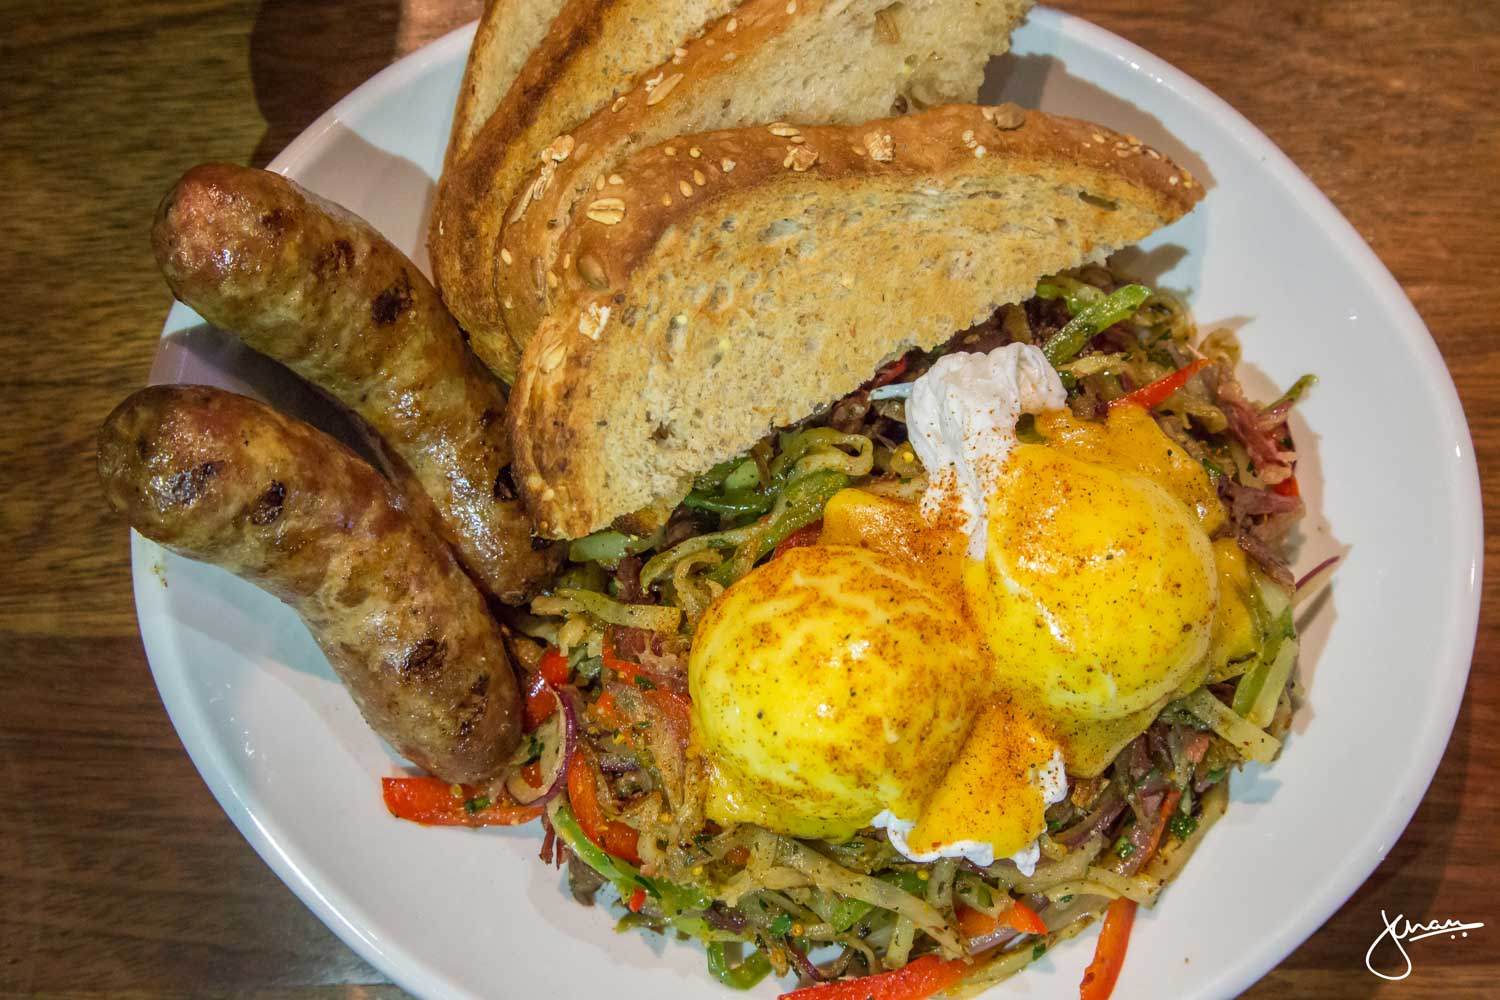 Corned Beef Hash with House-made Bangers